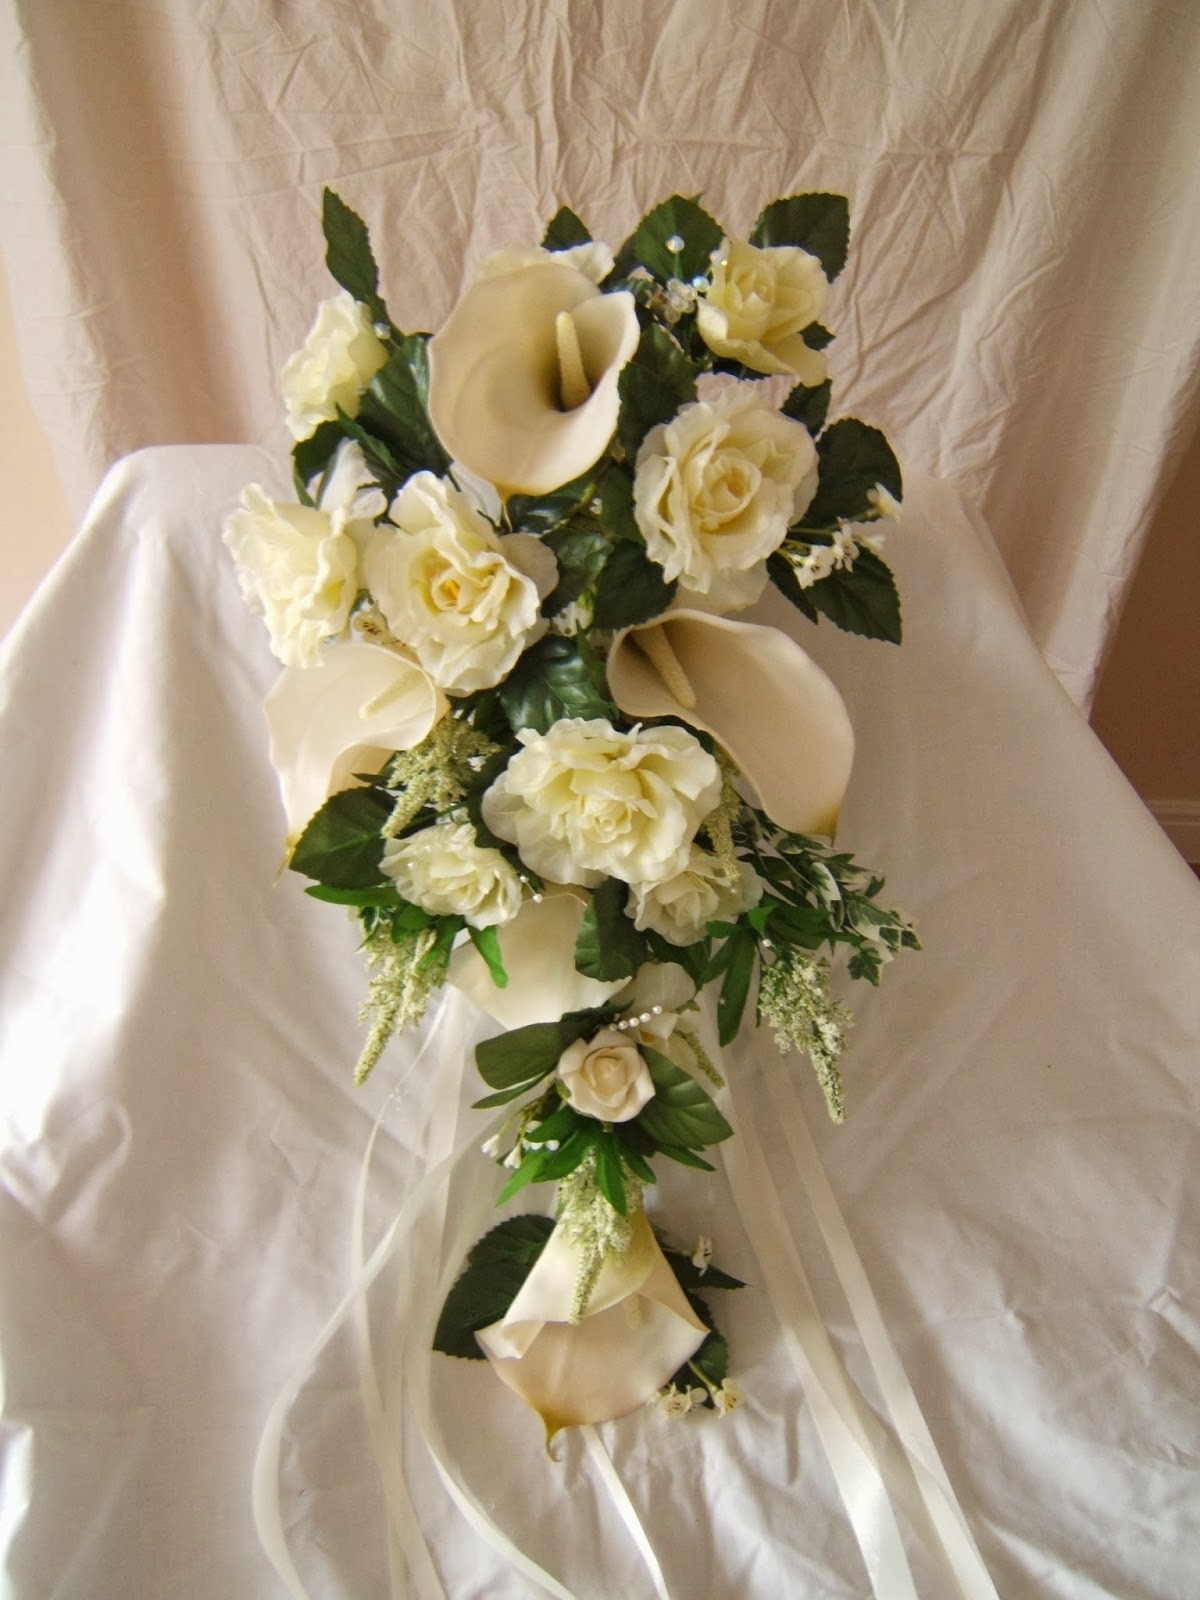 Wedding Flowers Lilies : Wedding flowers lilies flower hd wallpapers images